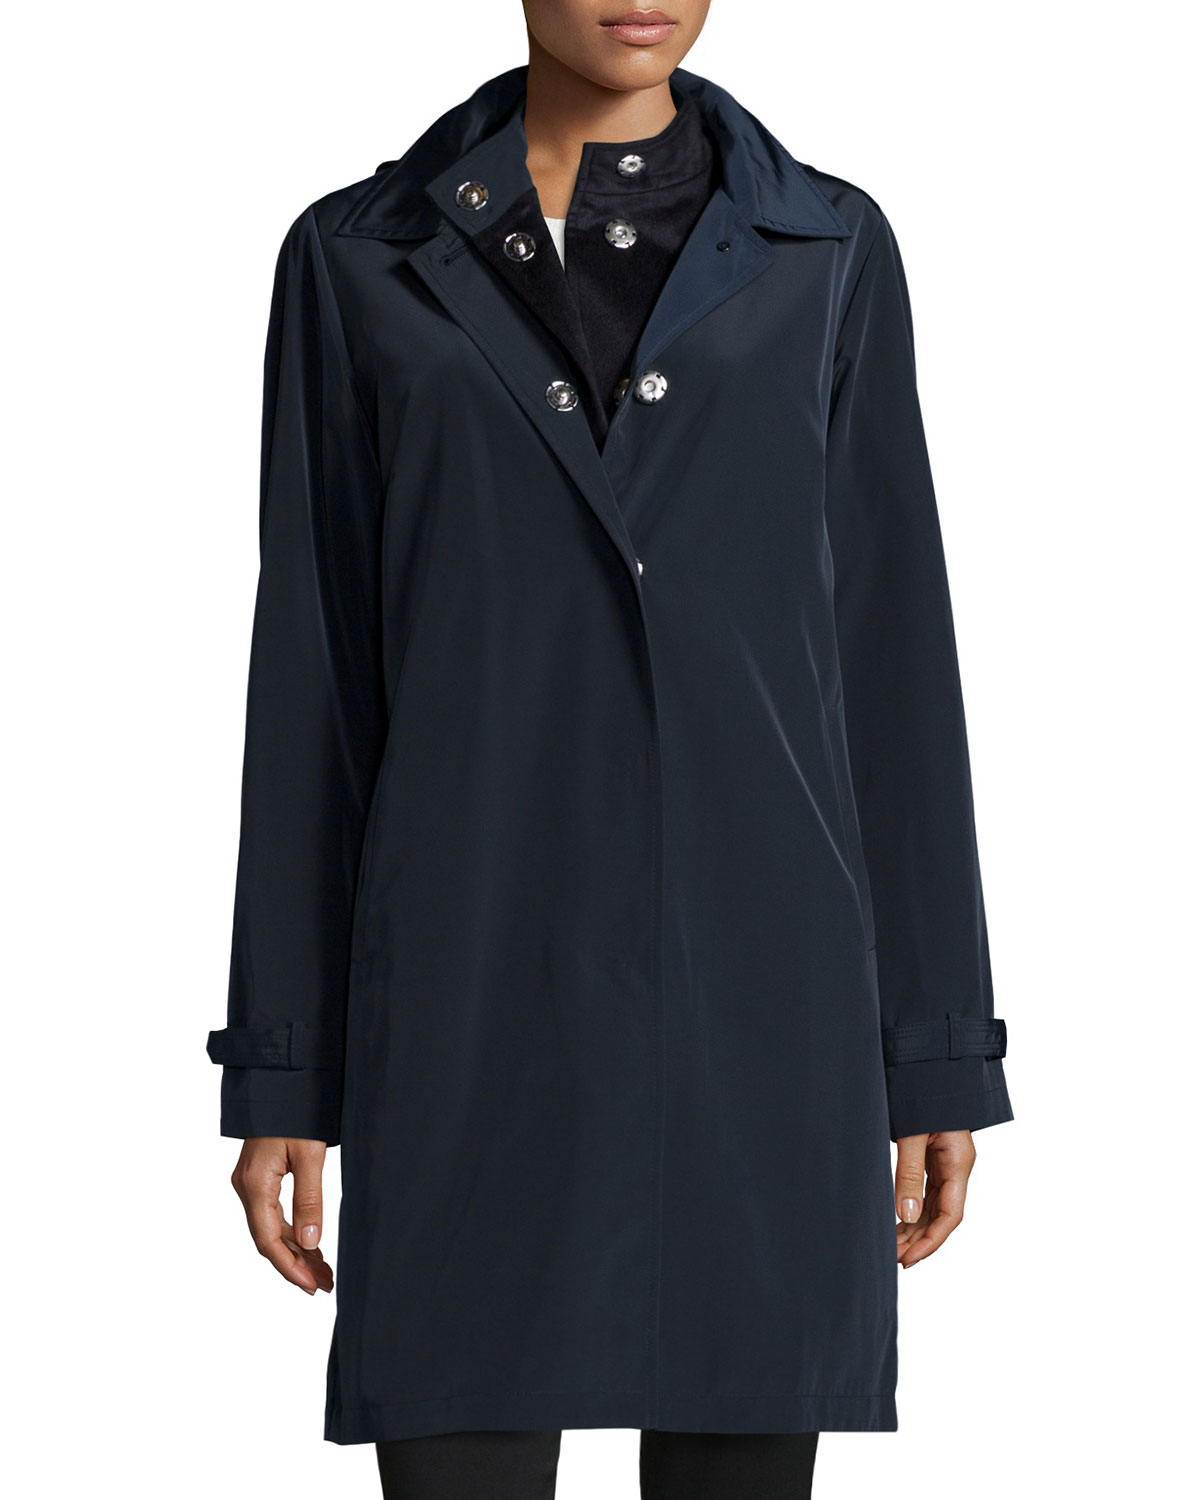 Cashmere 3-in-1 Raincoat